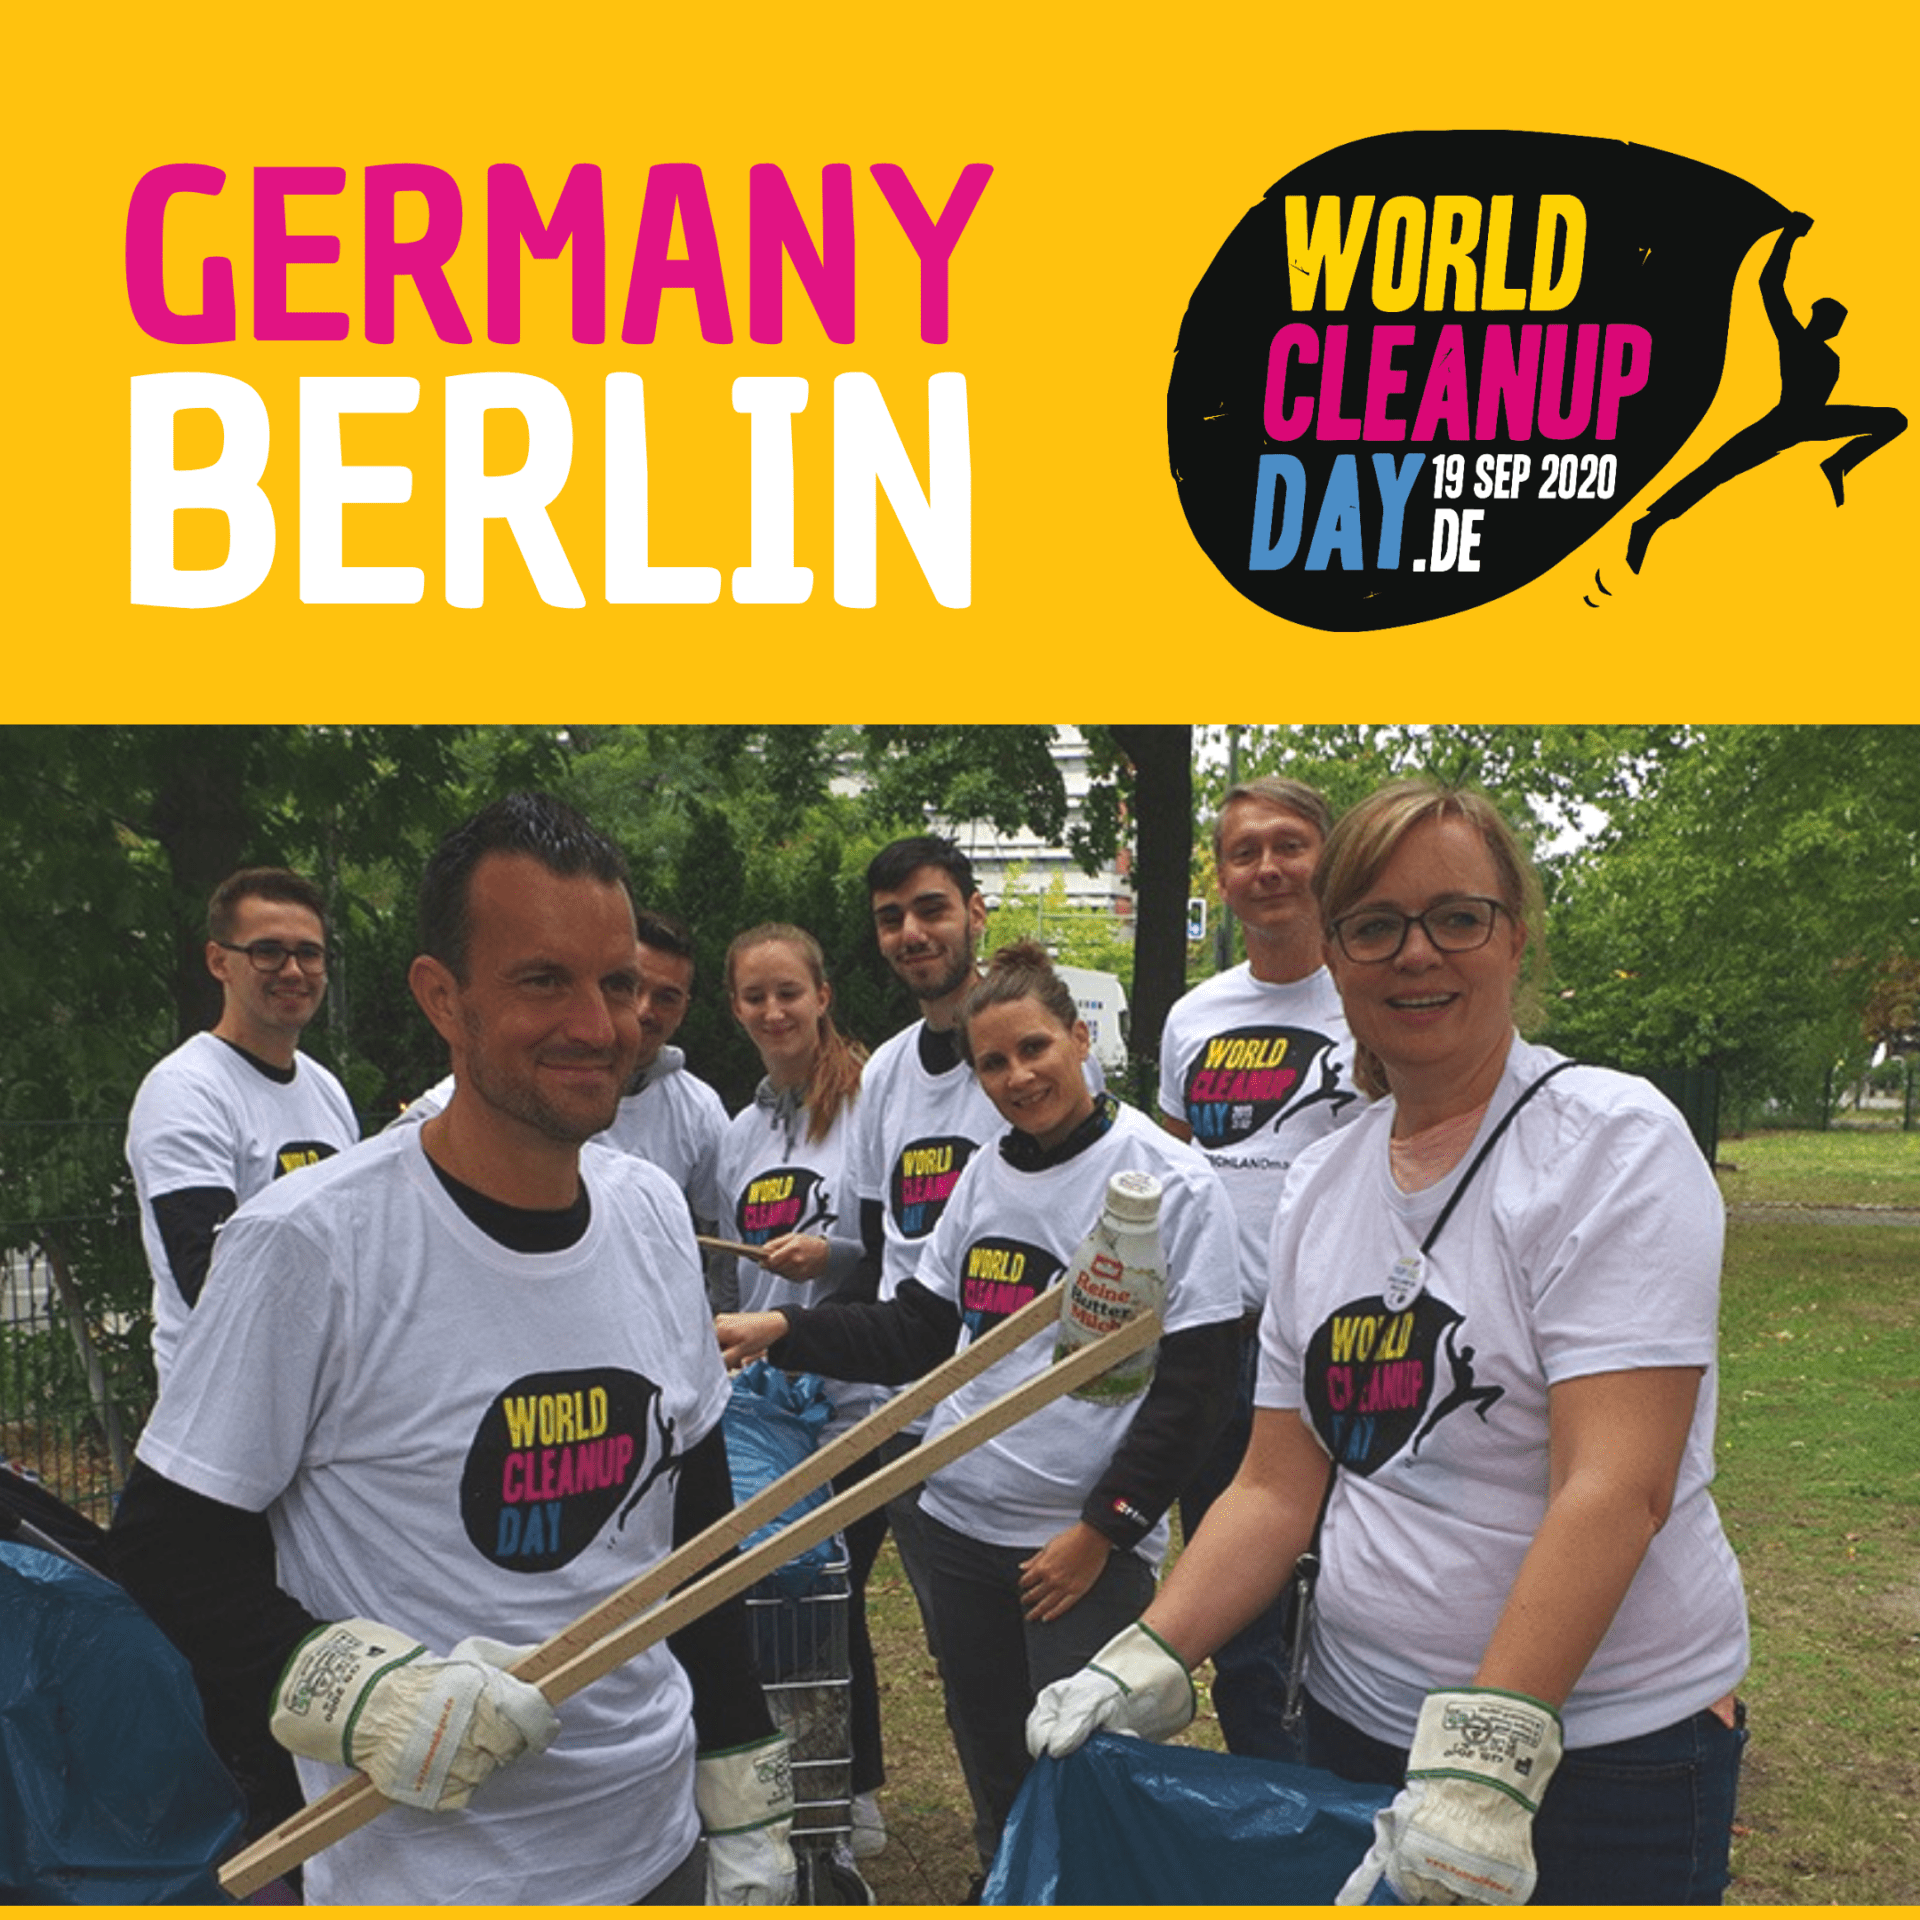 EDGE cleans up Mauerpark (Berlin)